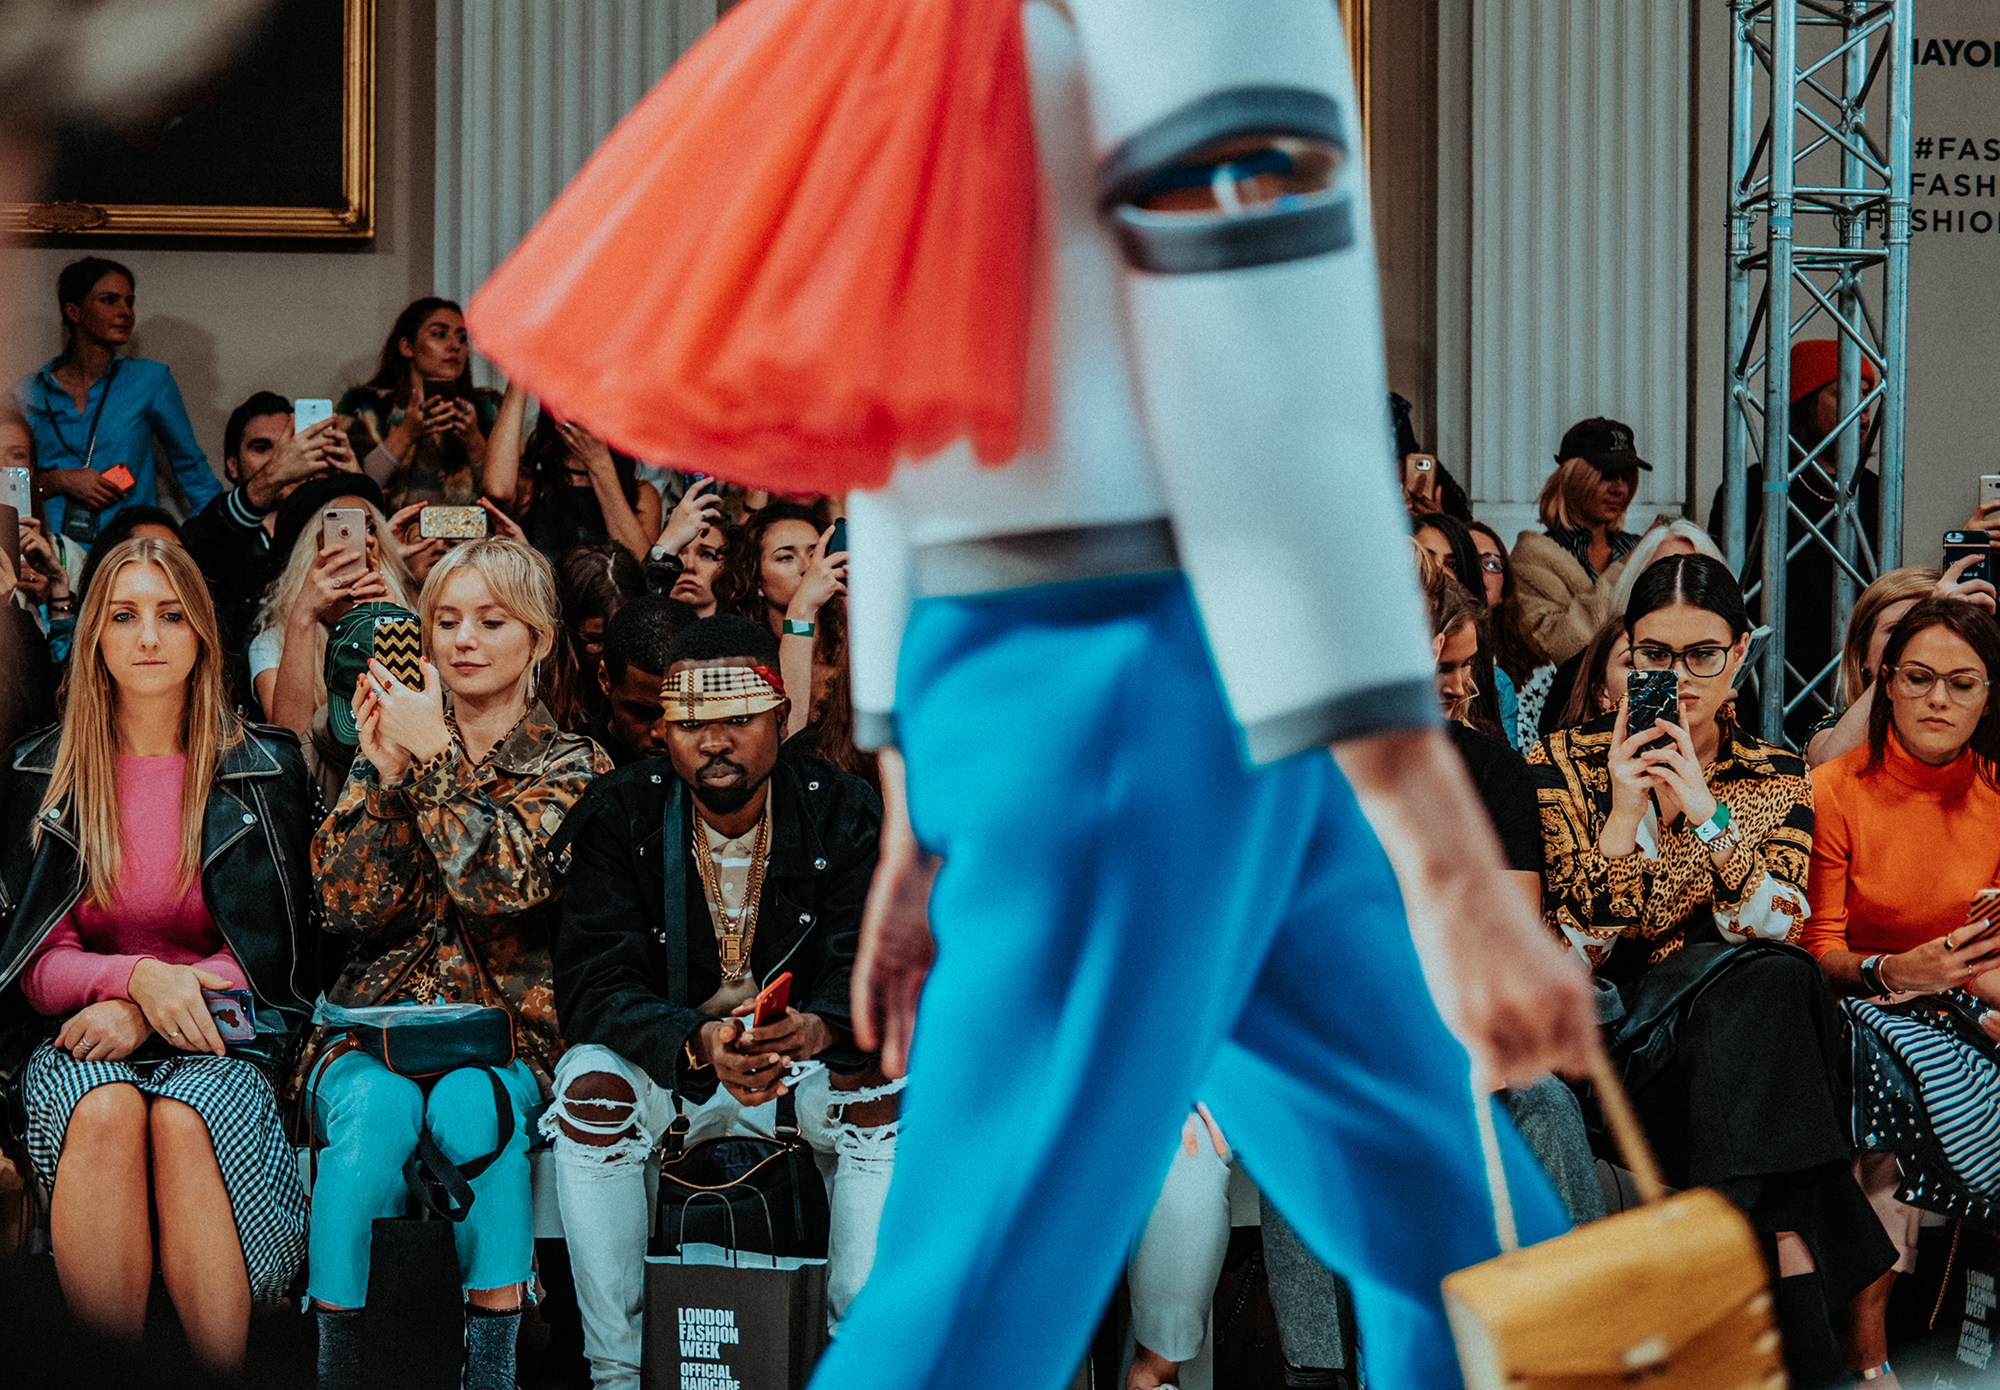 Image of people sitting front row at a fashion show while a model walks by